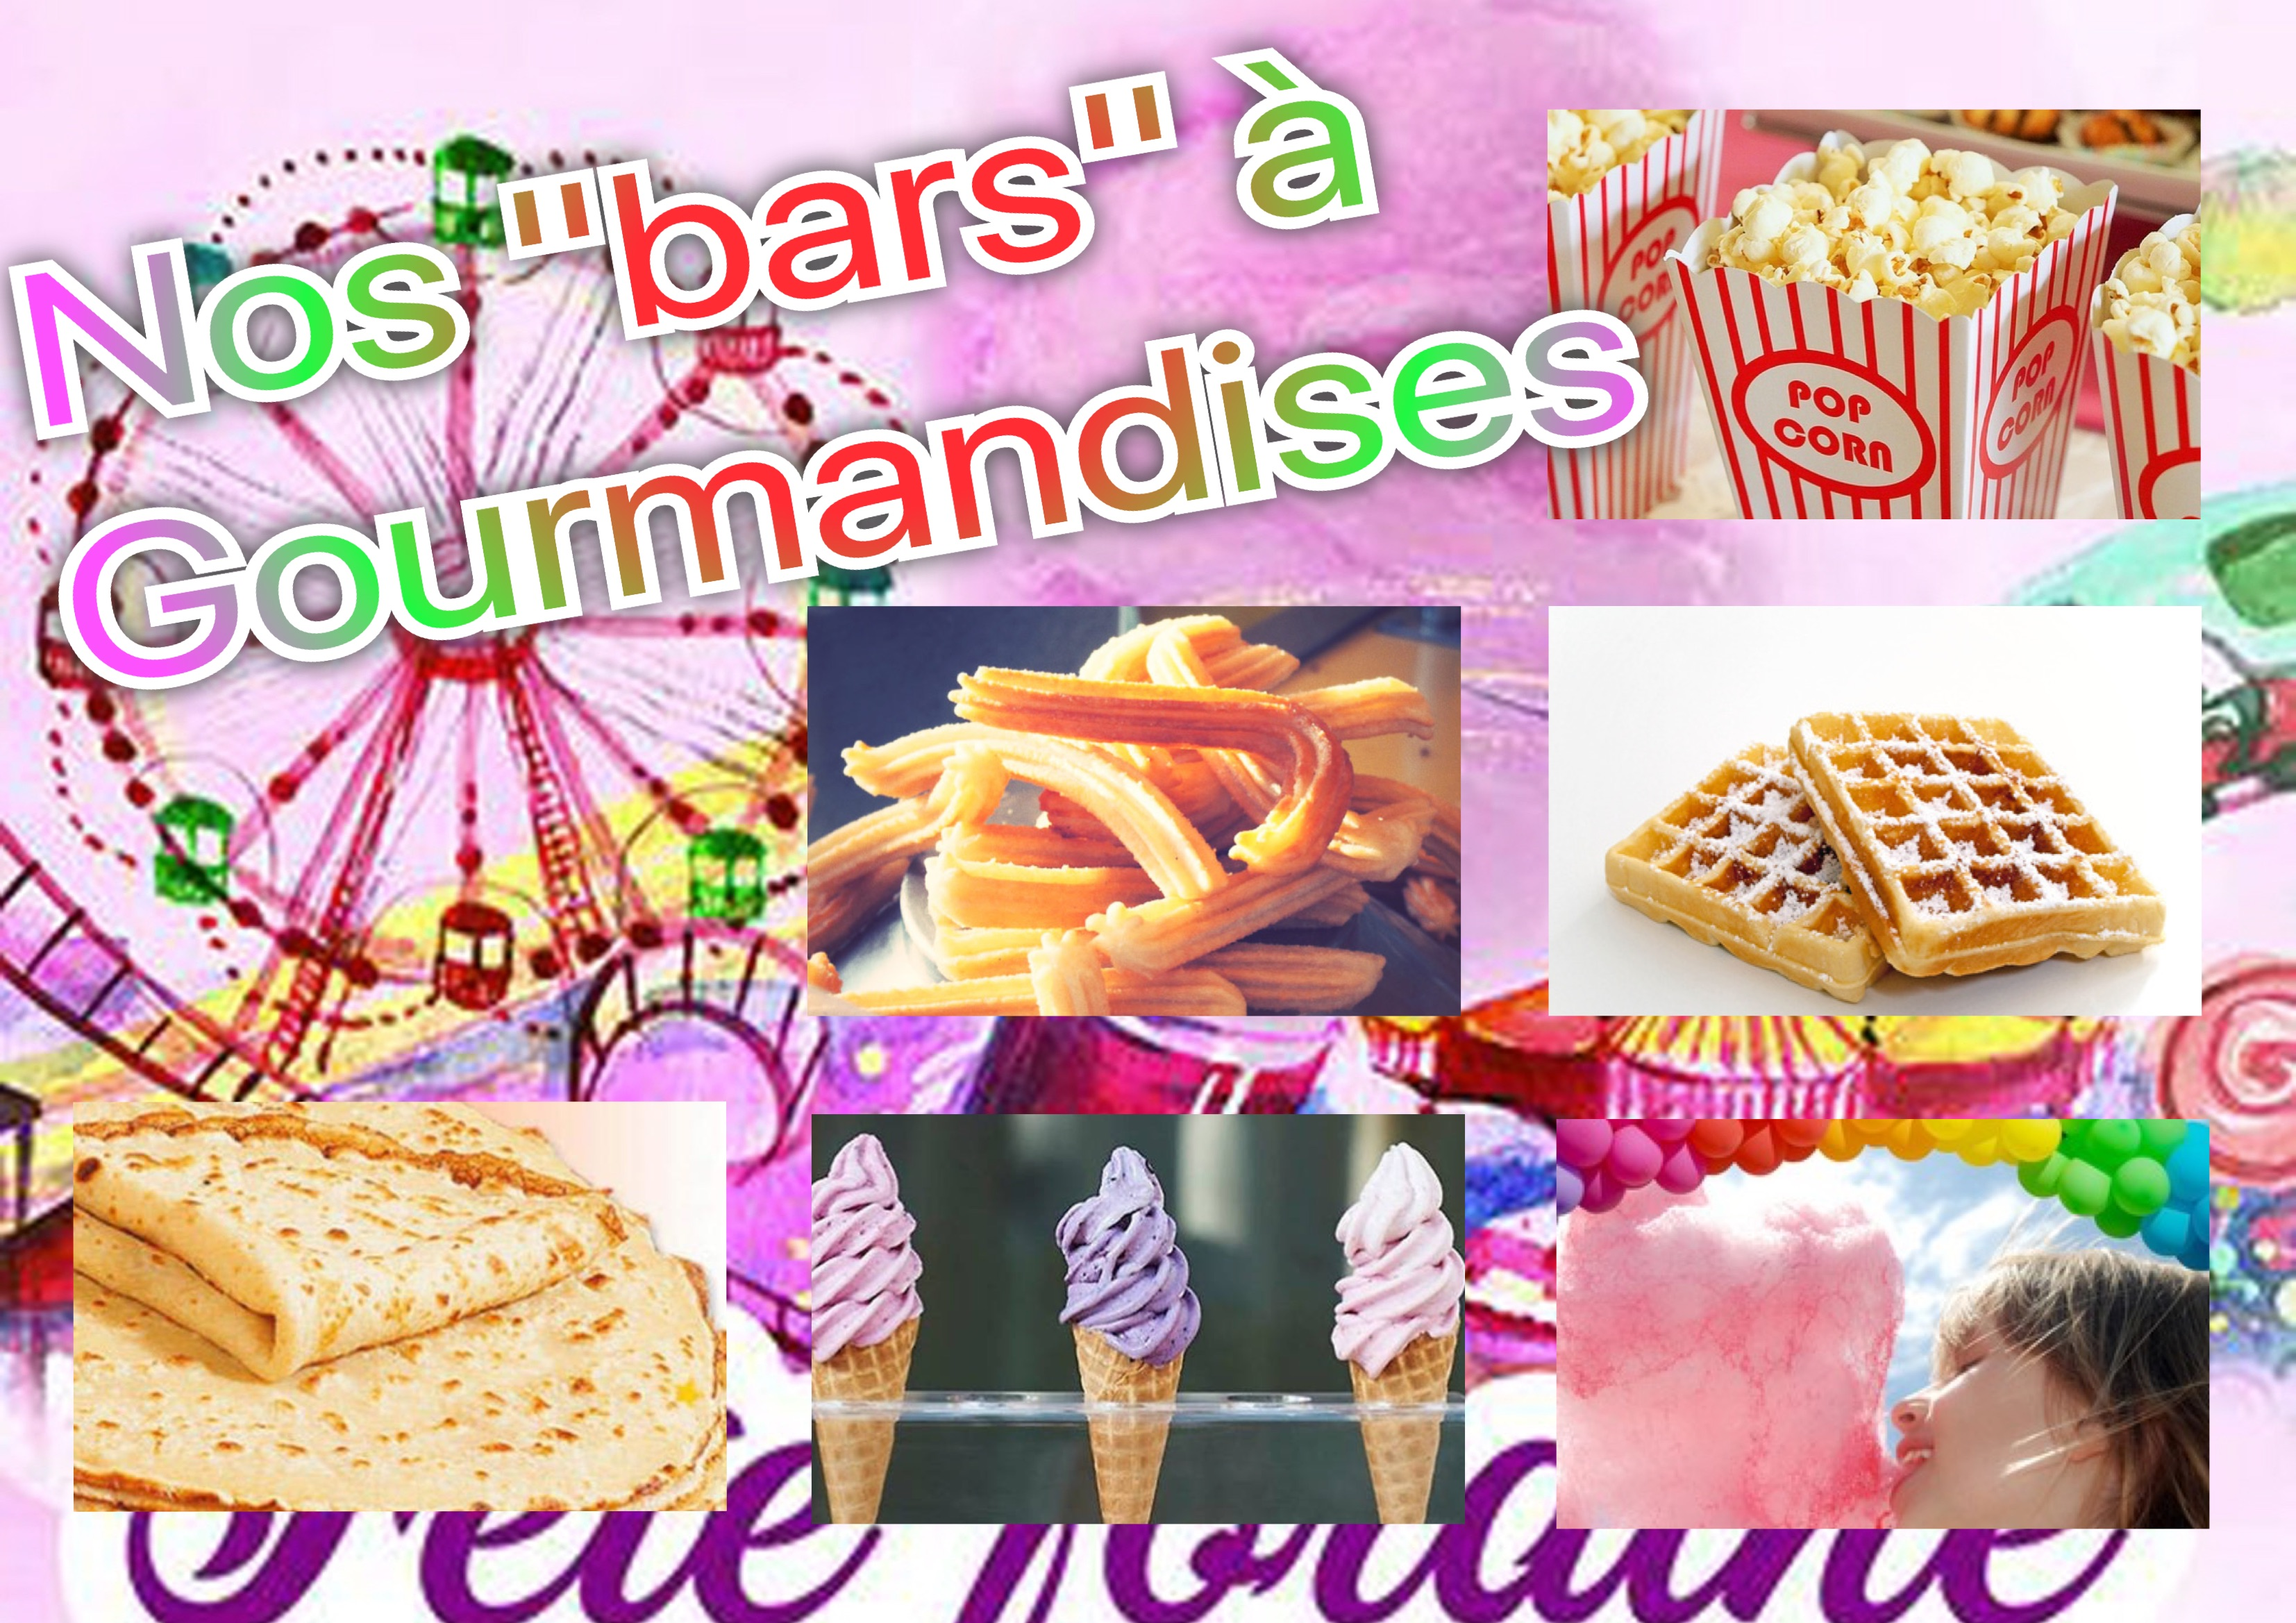 Nos bars gourmands